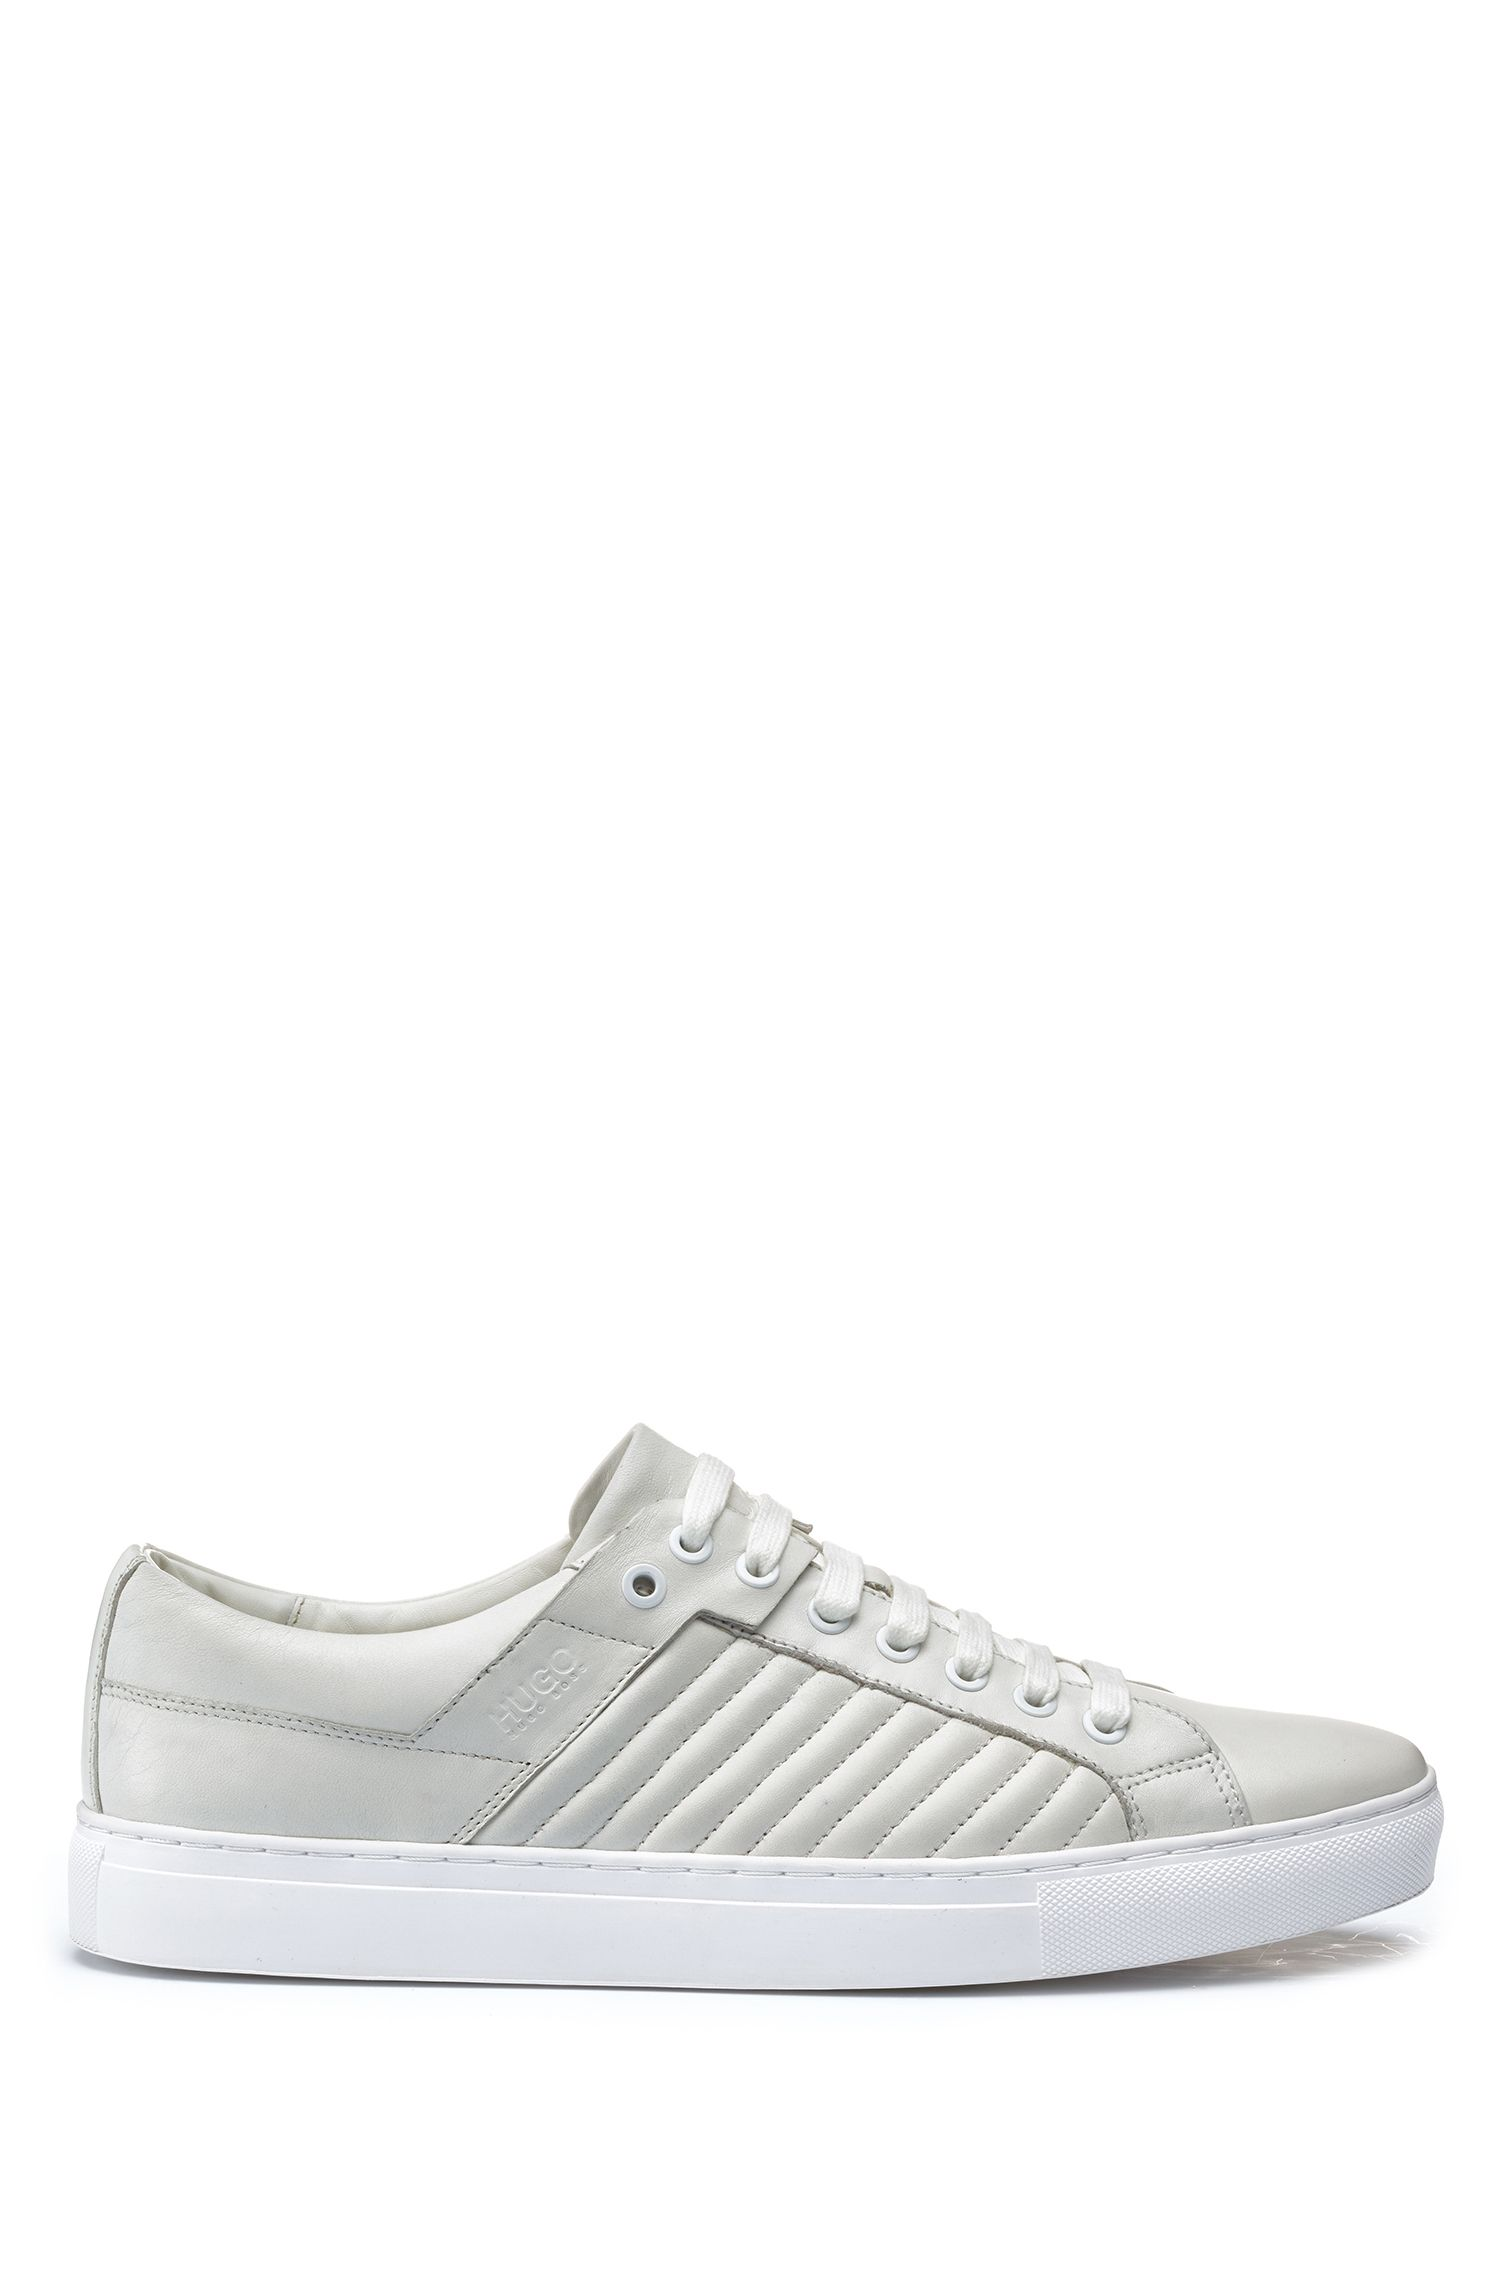 Tennis-style trainers in lambskin with matelassé detailing, White